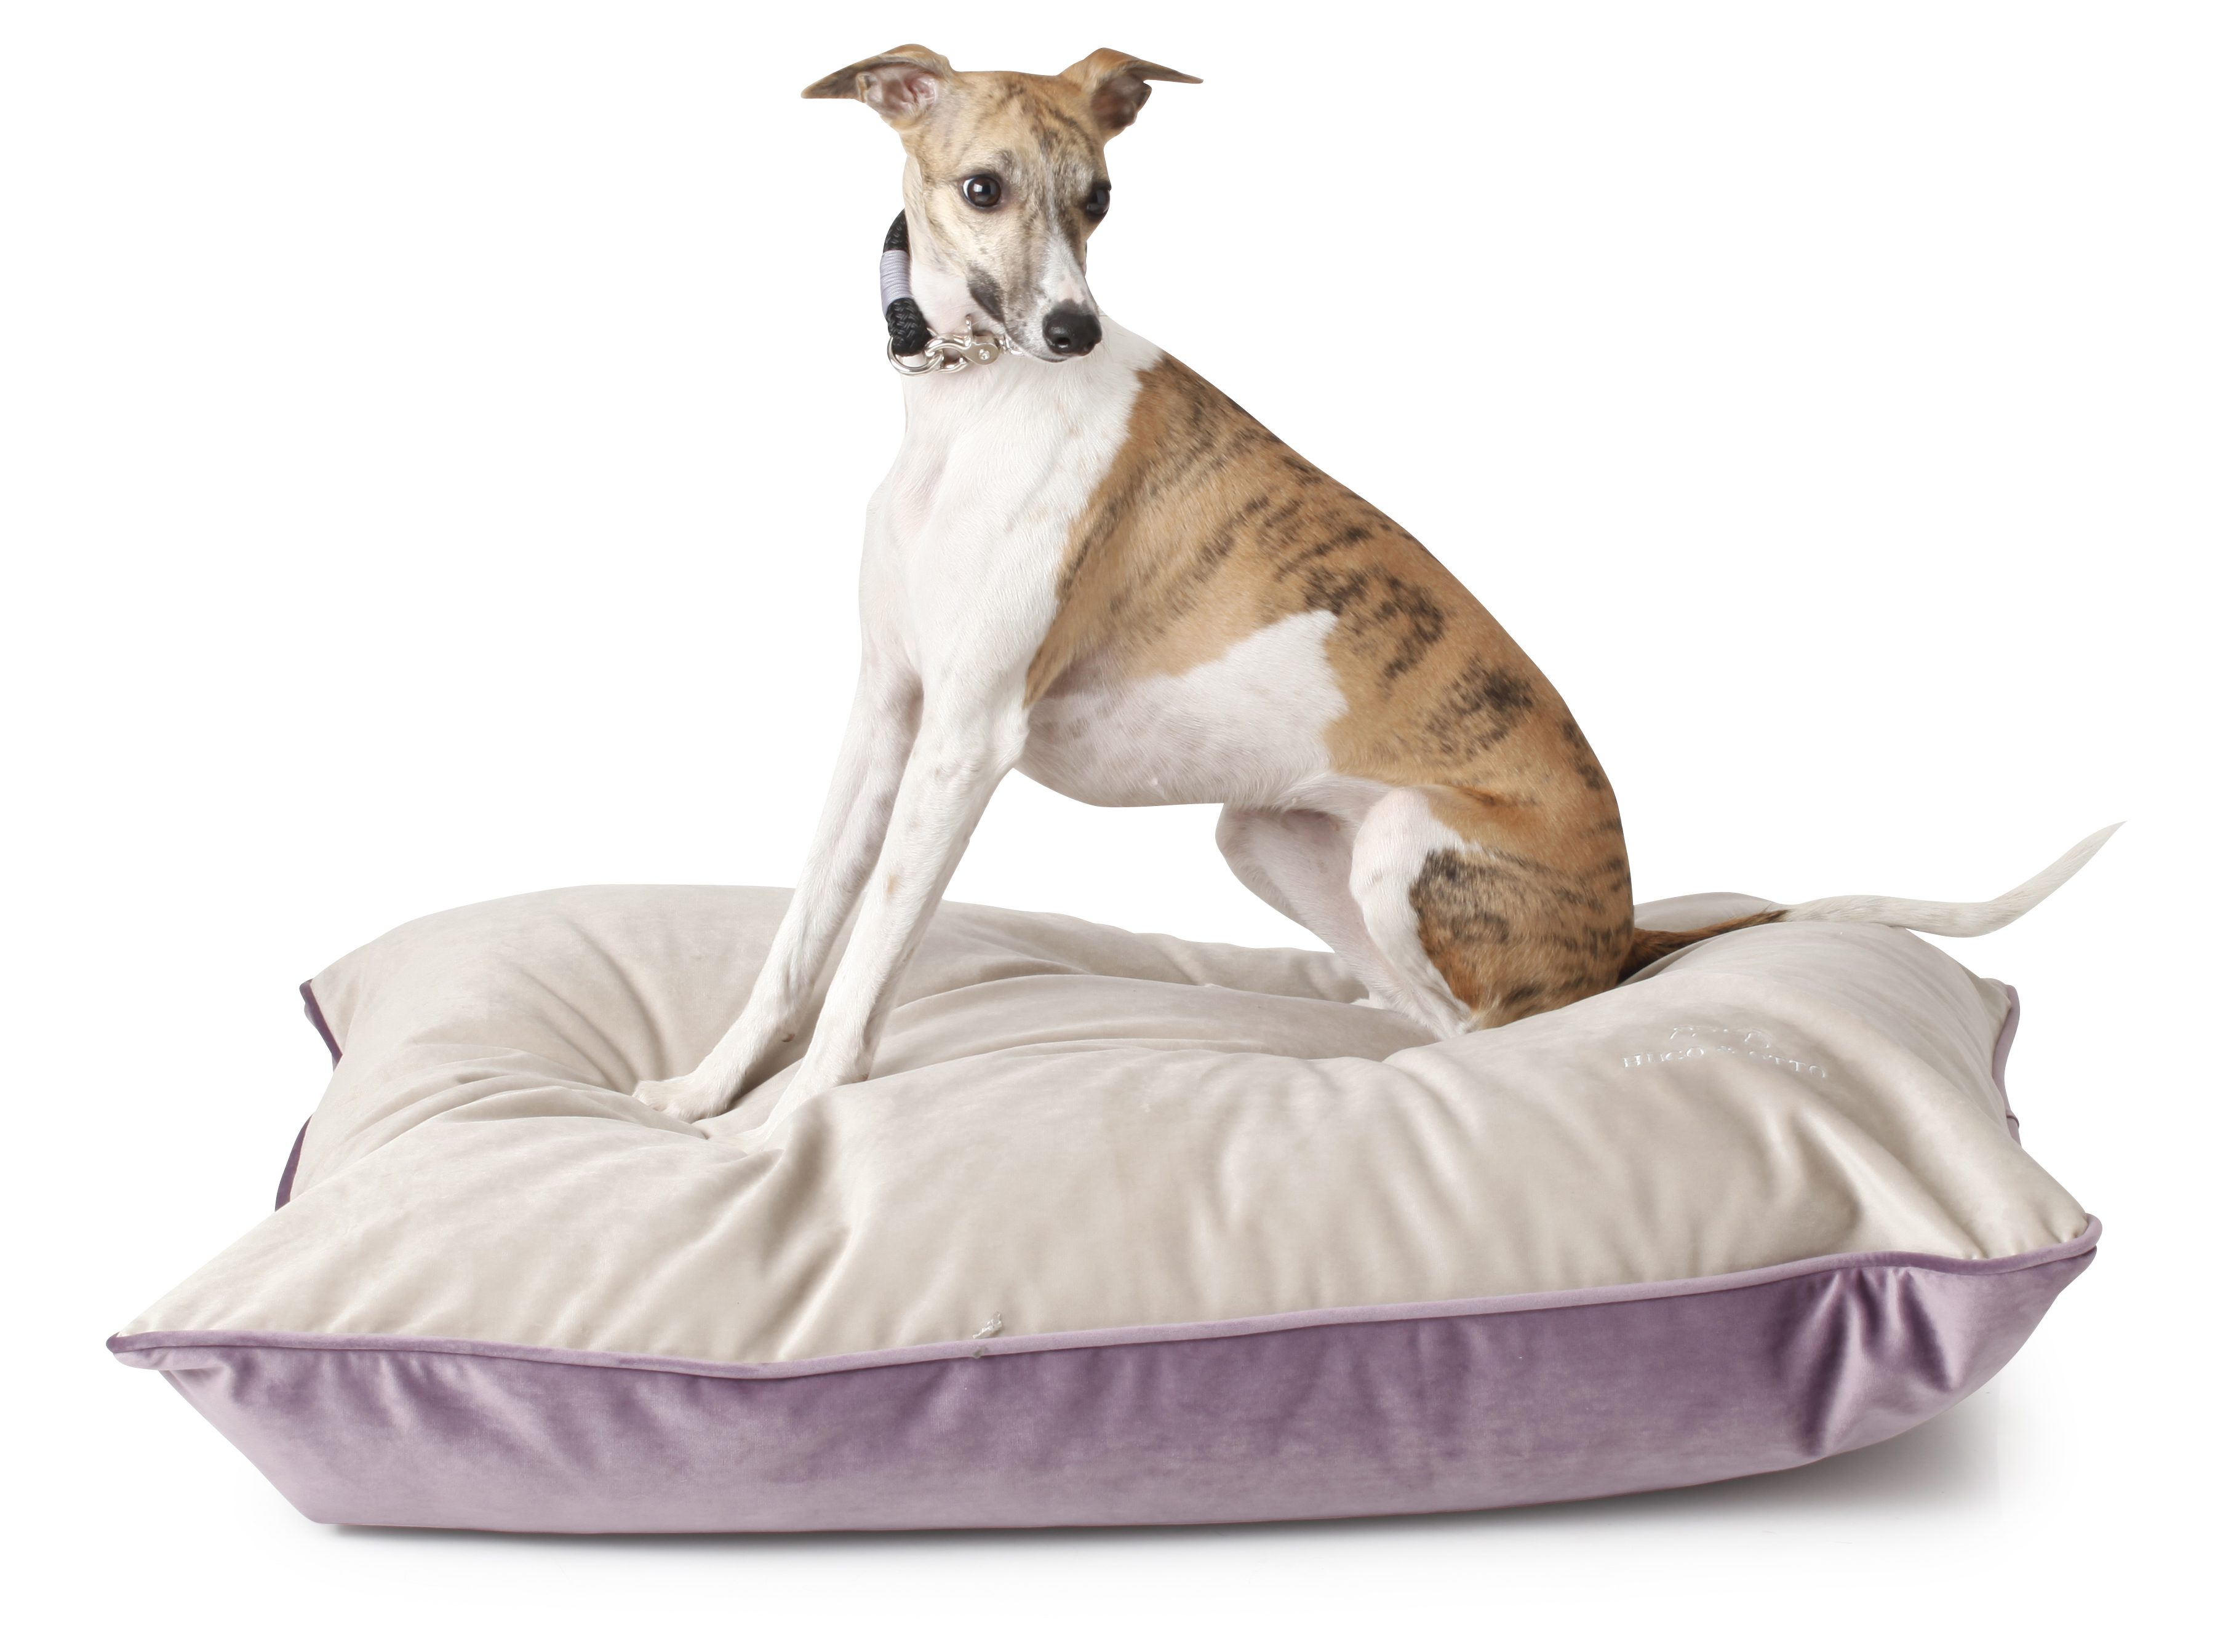 Louis Velour Cushion Dog Bed, Velour Dog Bed, Cushion, Dog Cushion, Cushion Dog Bed, Luxury Dog Cushion, Luxury Velour Dog Cushion, Louis, Louis Heather Dog Cushion, Italian Whippet, Cushions For Whippets, Luxury Dog Beds, Designer Dog Beds, Hugo & Otto Dog Bed, Hugo & Otto Dog Cushion,